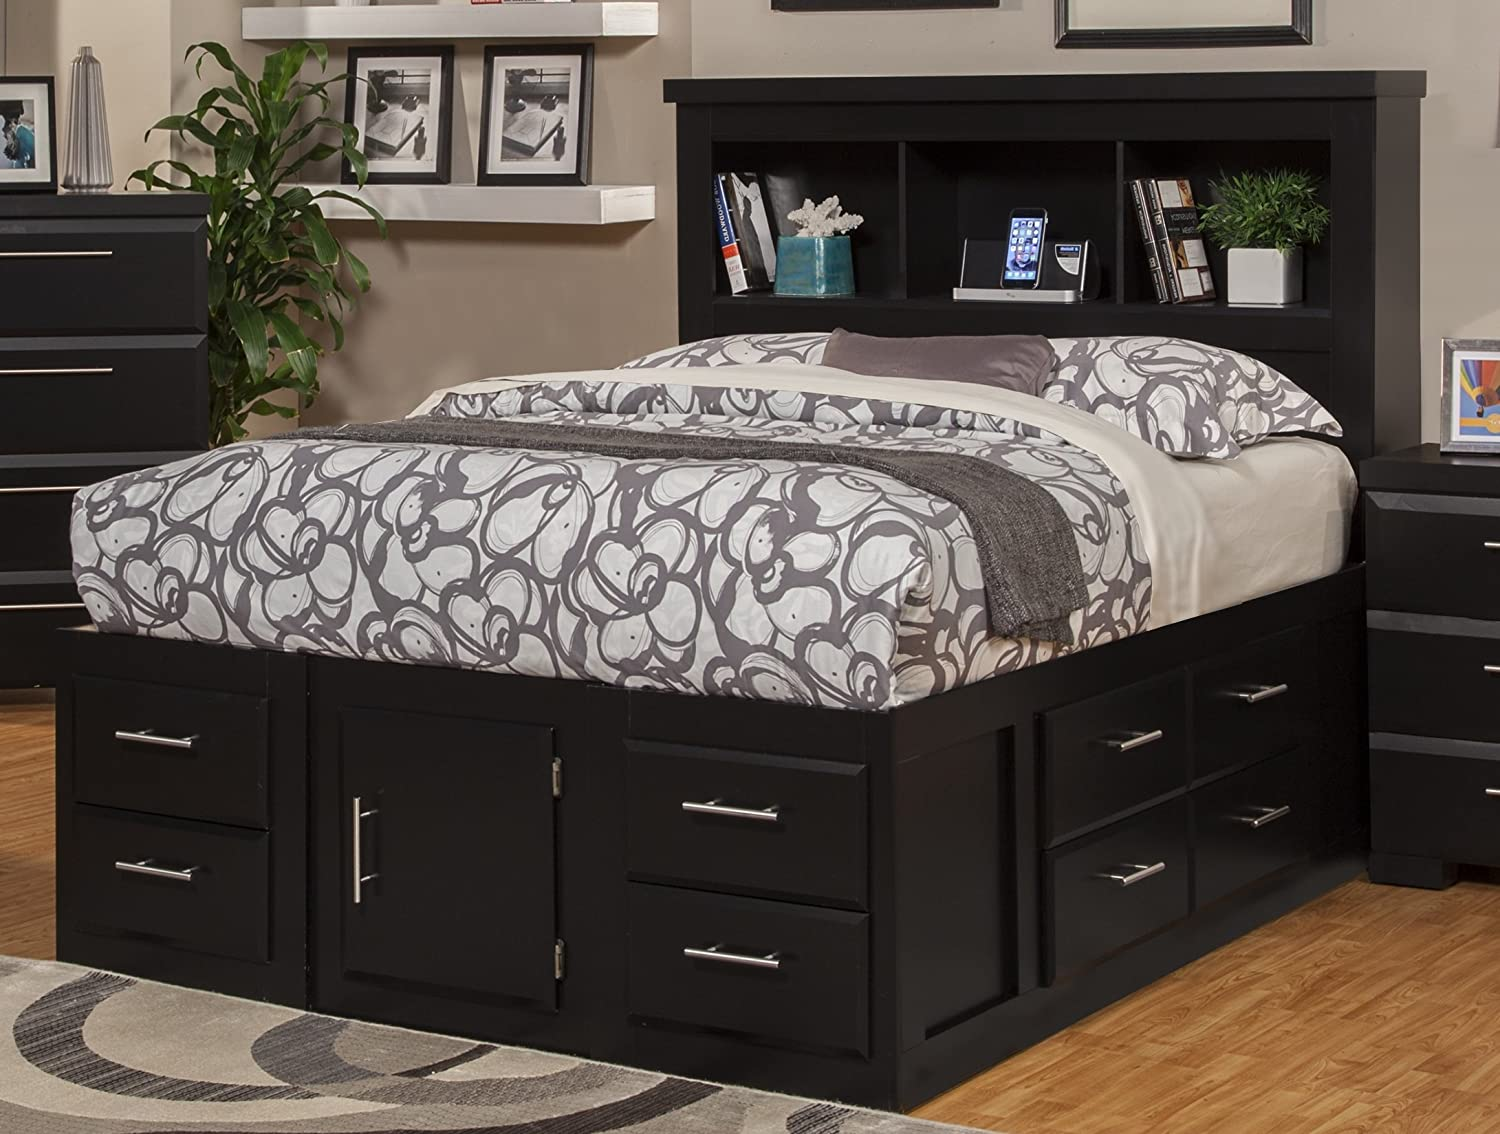 ideas drawers frame white queen and with bed beds platform attractive storage